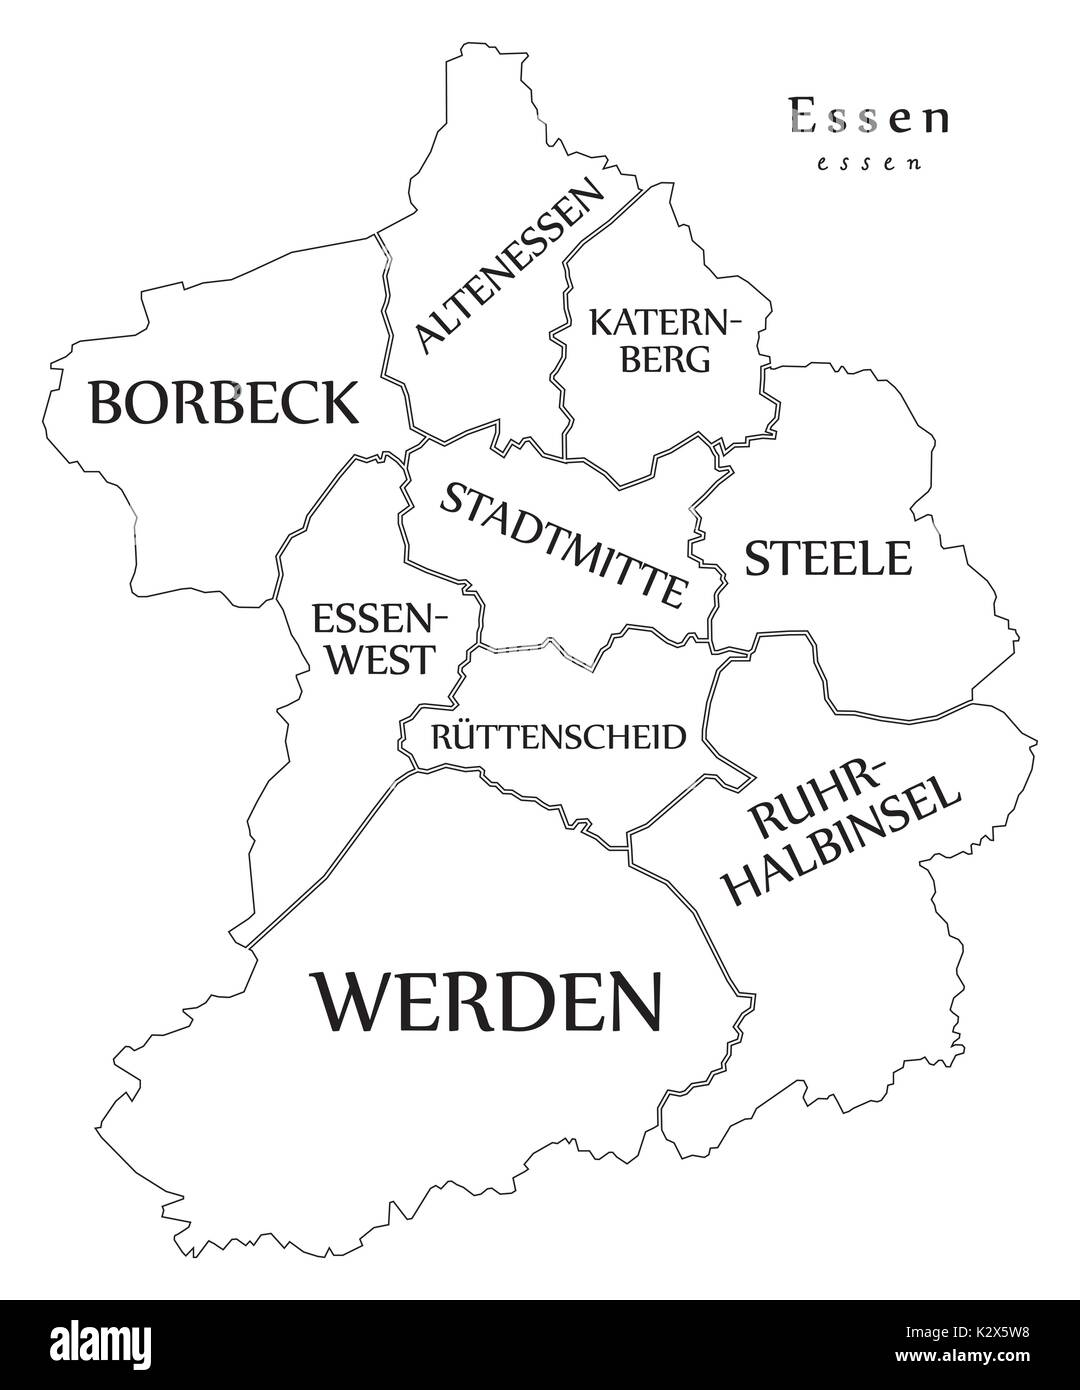 Modern City Map Essen city of Germany with boroughs and titles DE